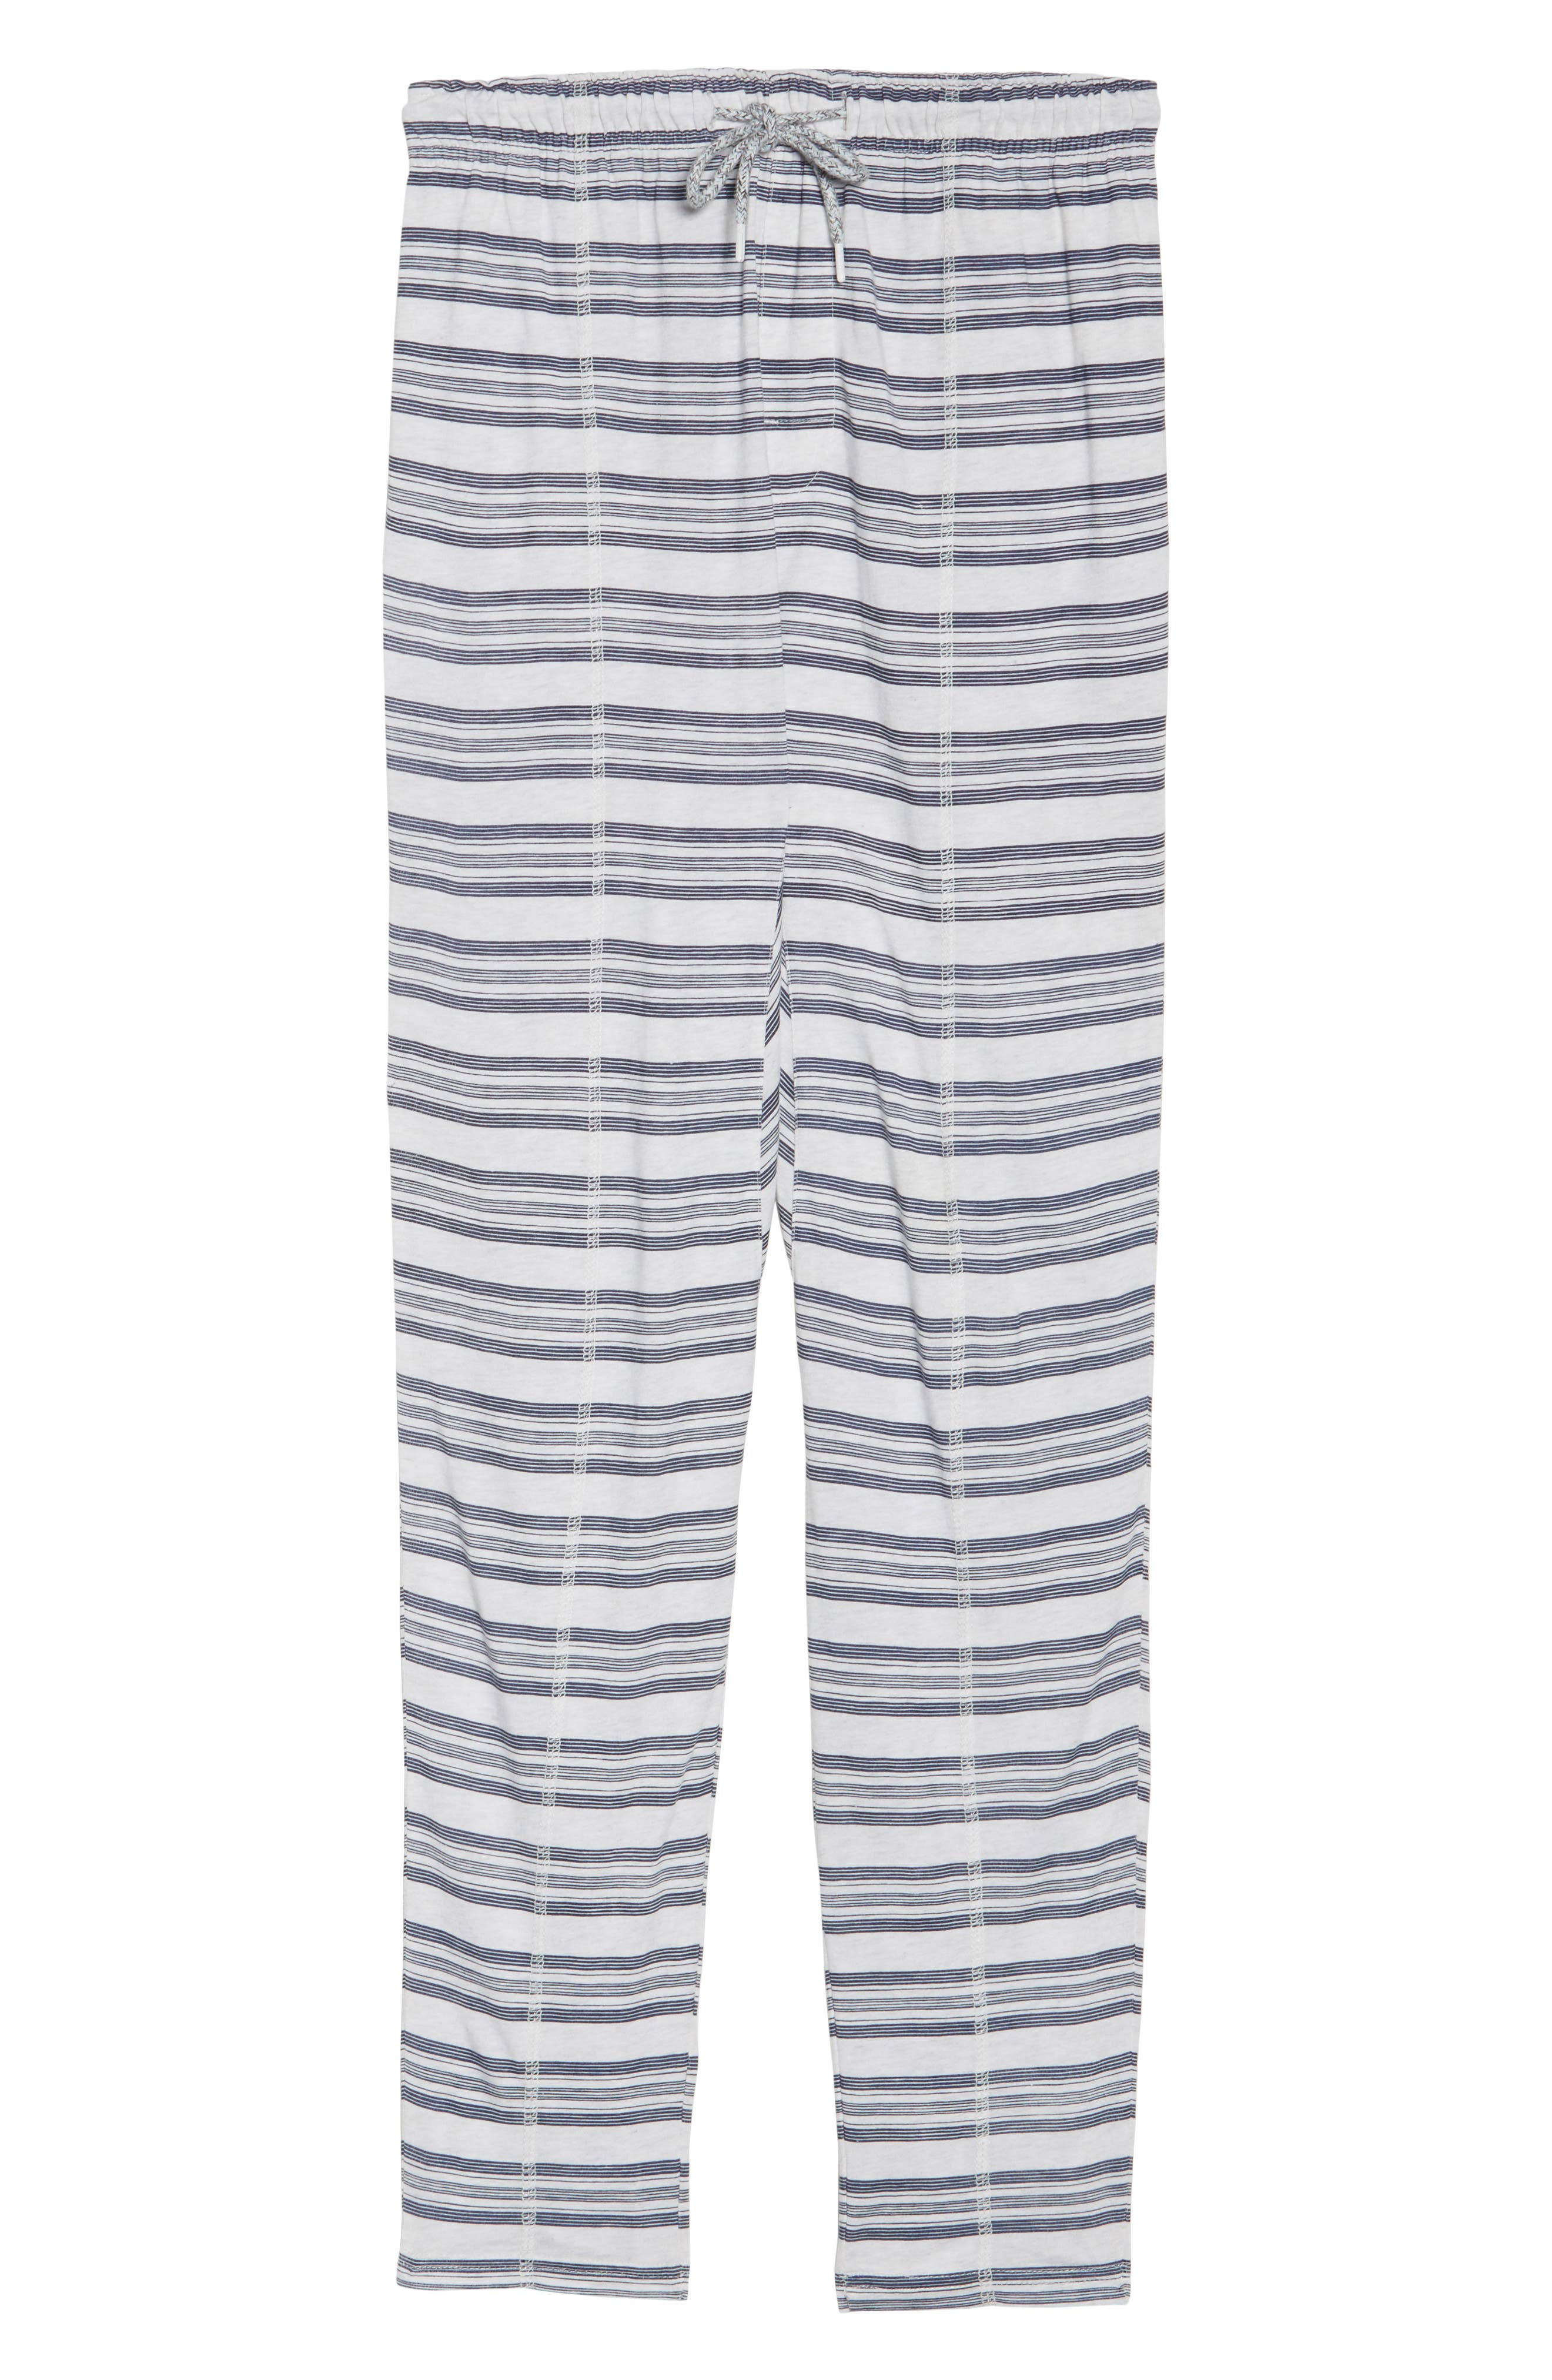 Alice Lounge Pants,                             Alternate thumbnail 4, color,                             Snow Marle Stripe